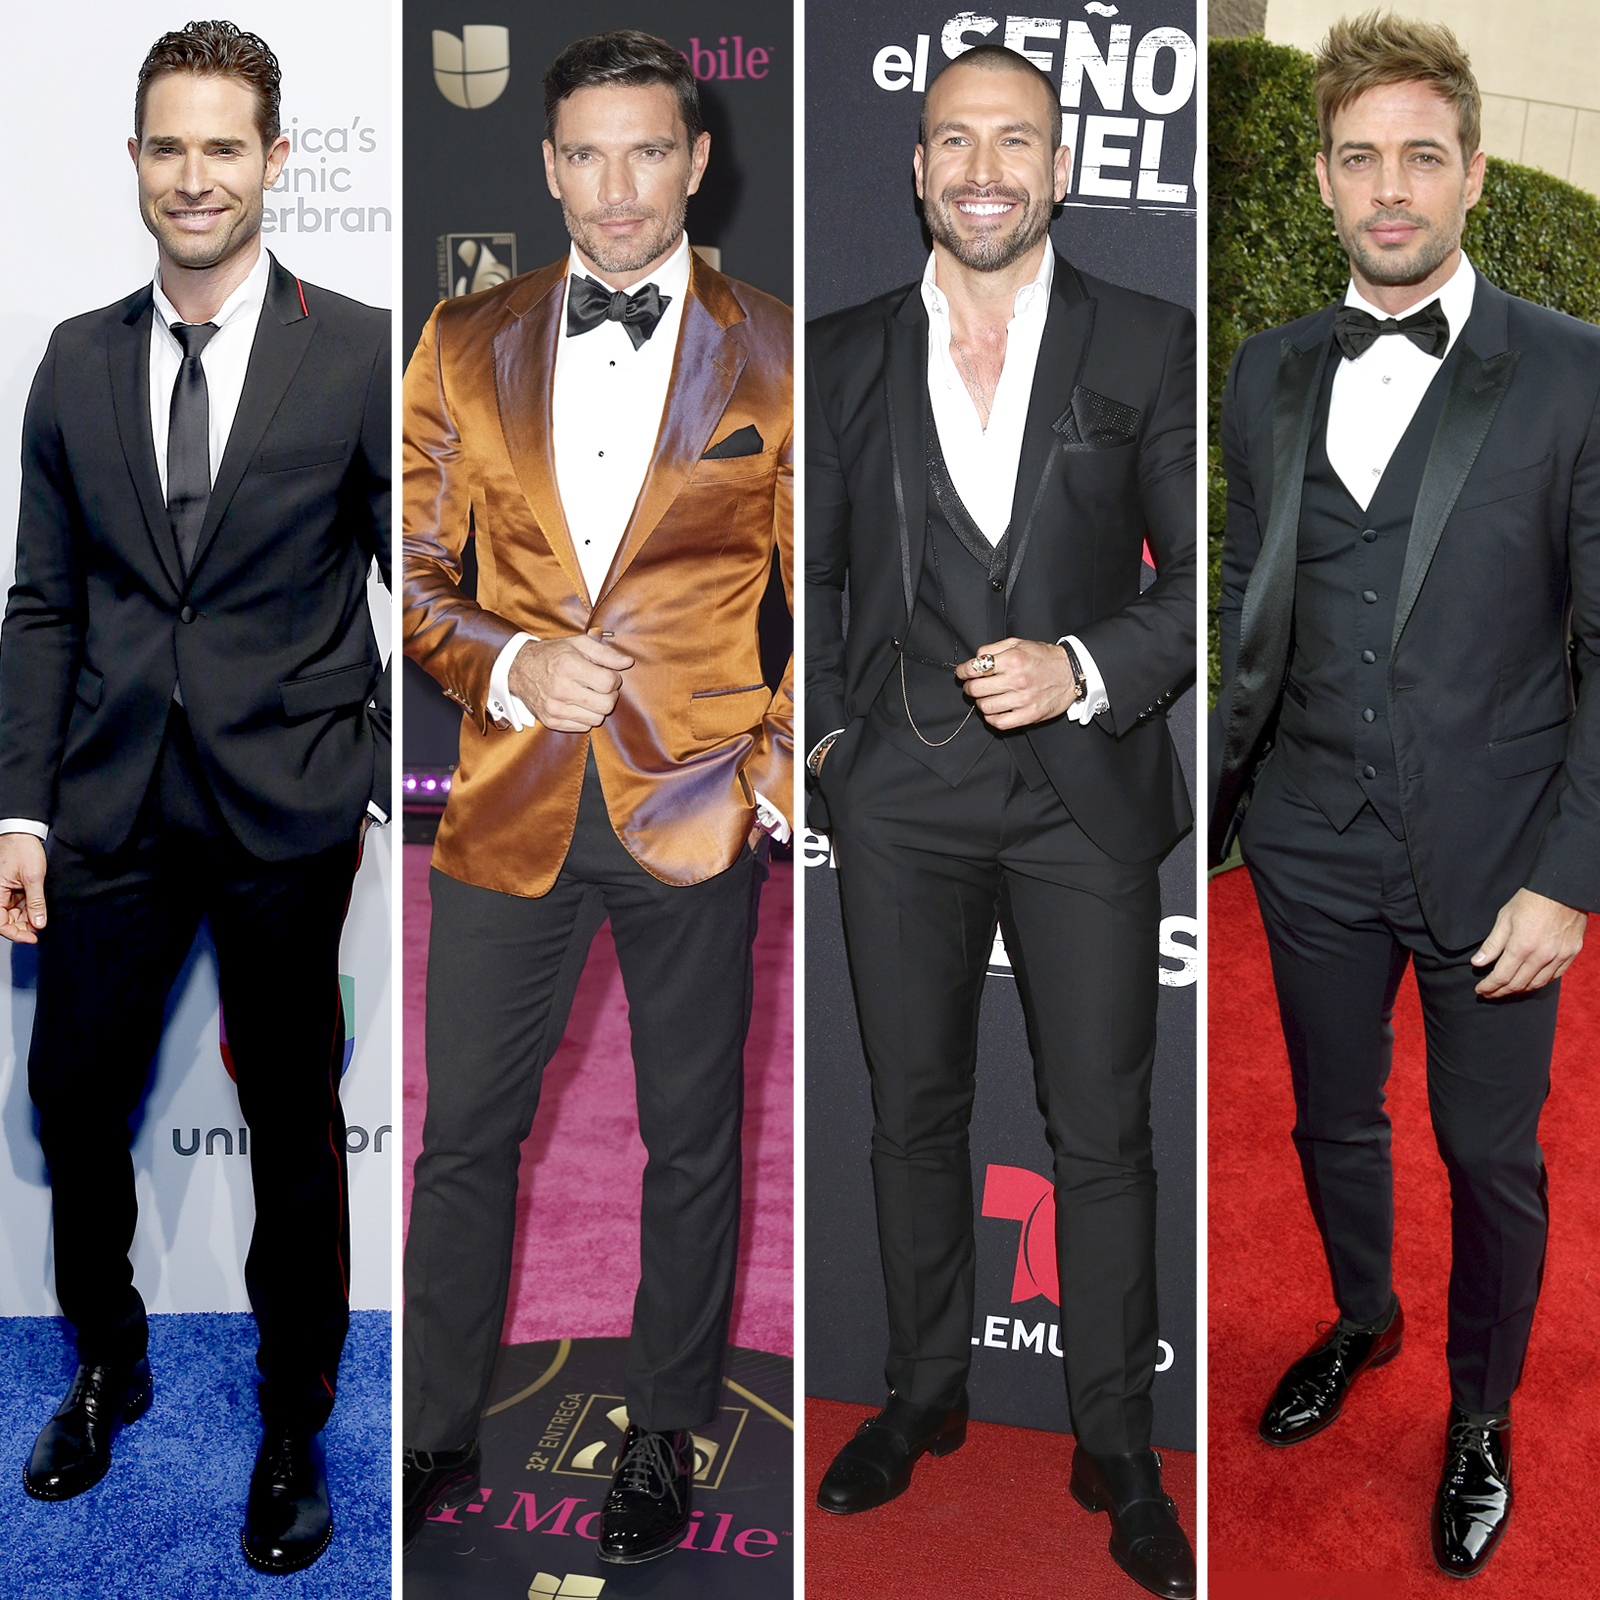 Sebastian Rulli; Julian Gil; Rafael Amaya; William Levy